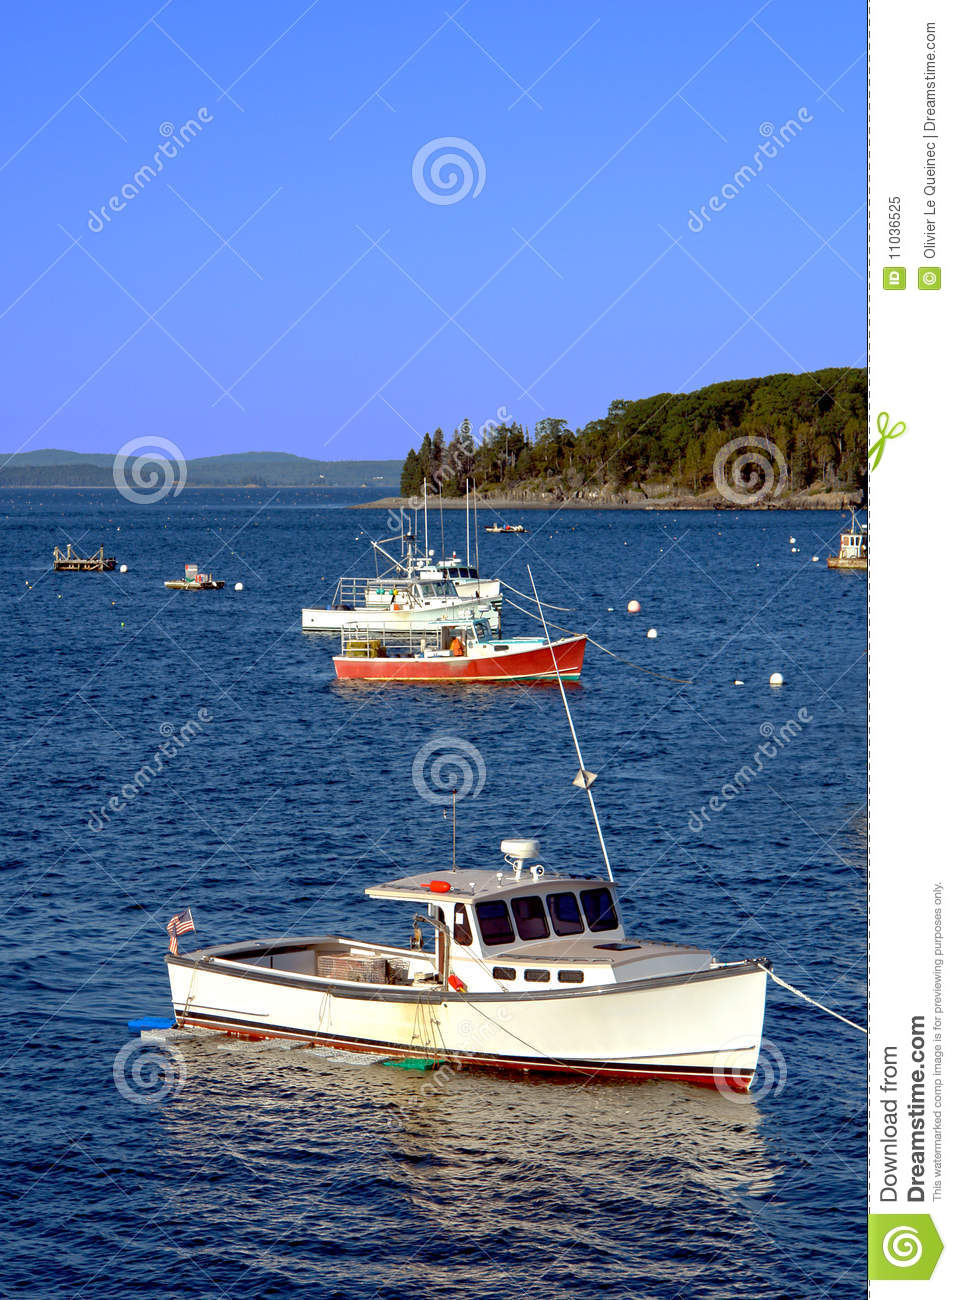 Small Lobster Fishing Boat In Maine Coast Bay Royalty Free Stock Photo - Image: 11036525